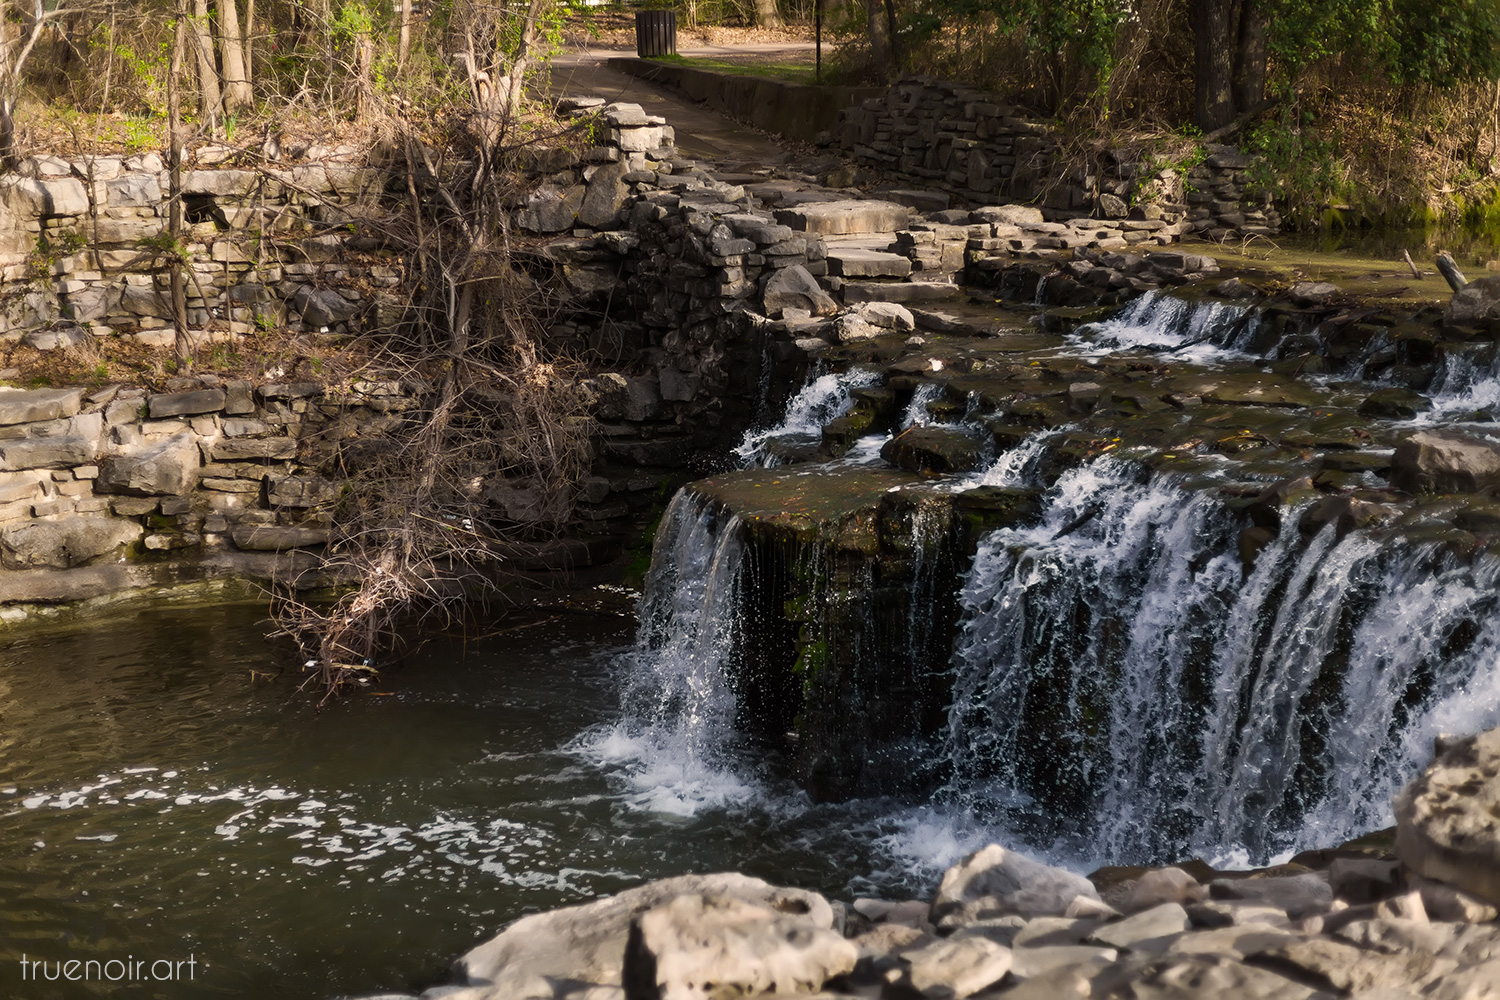 Photograph of a small waterfall found in Richardson, TX